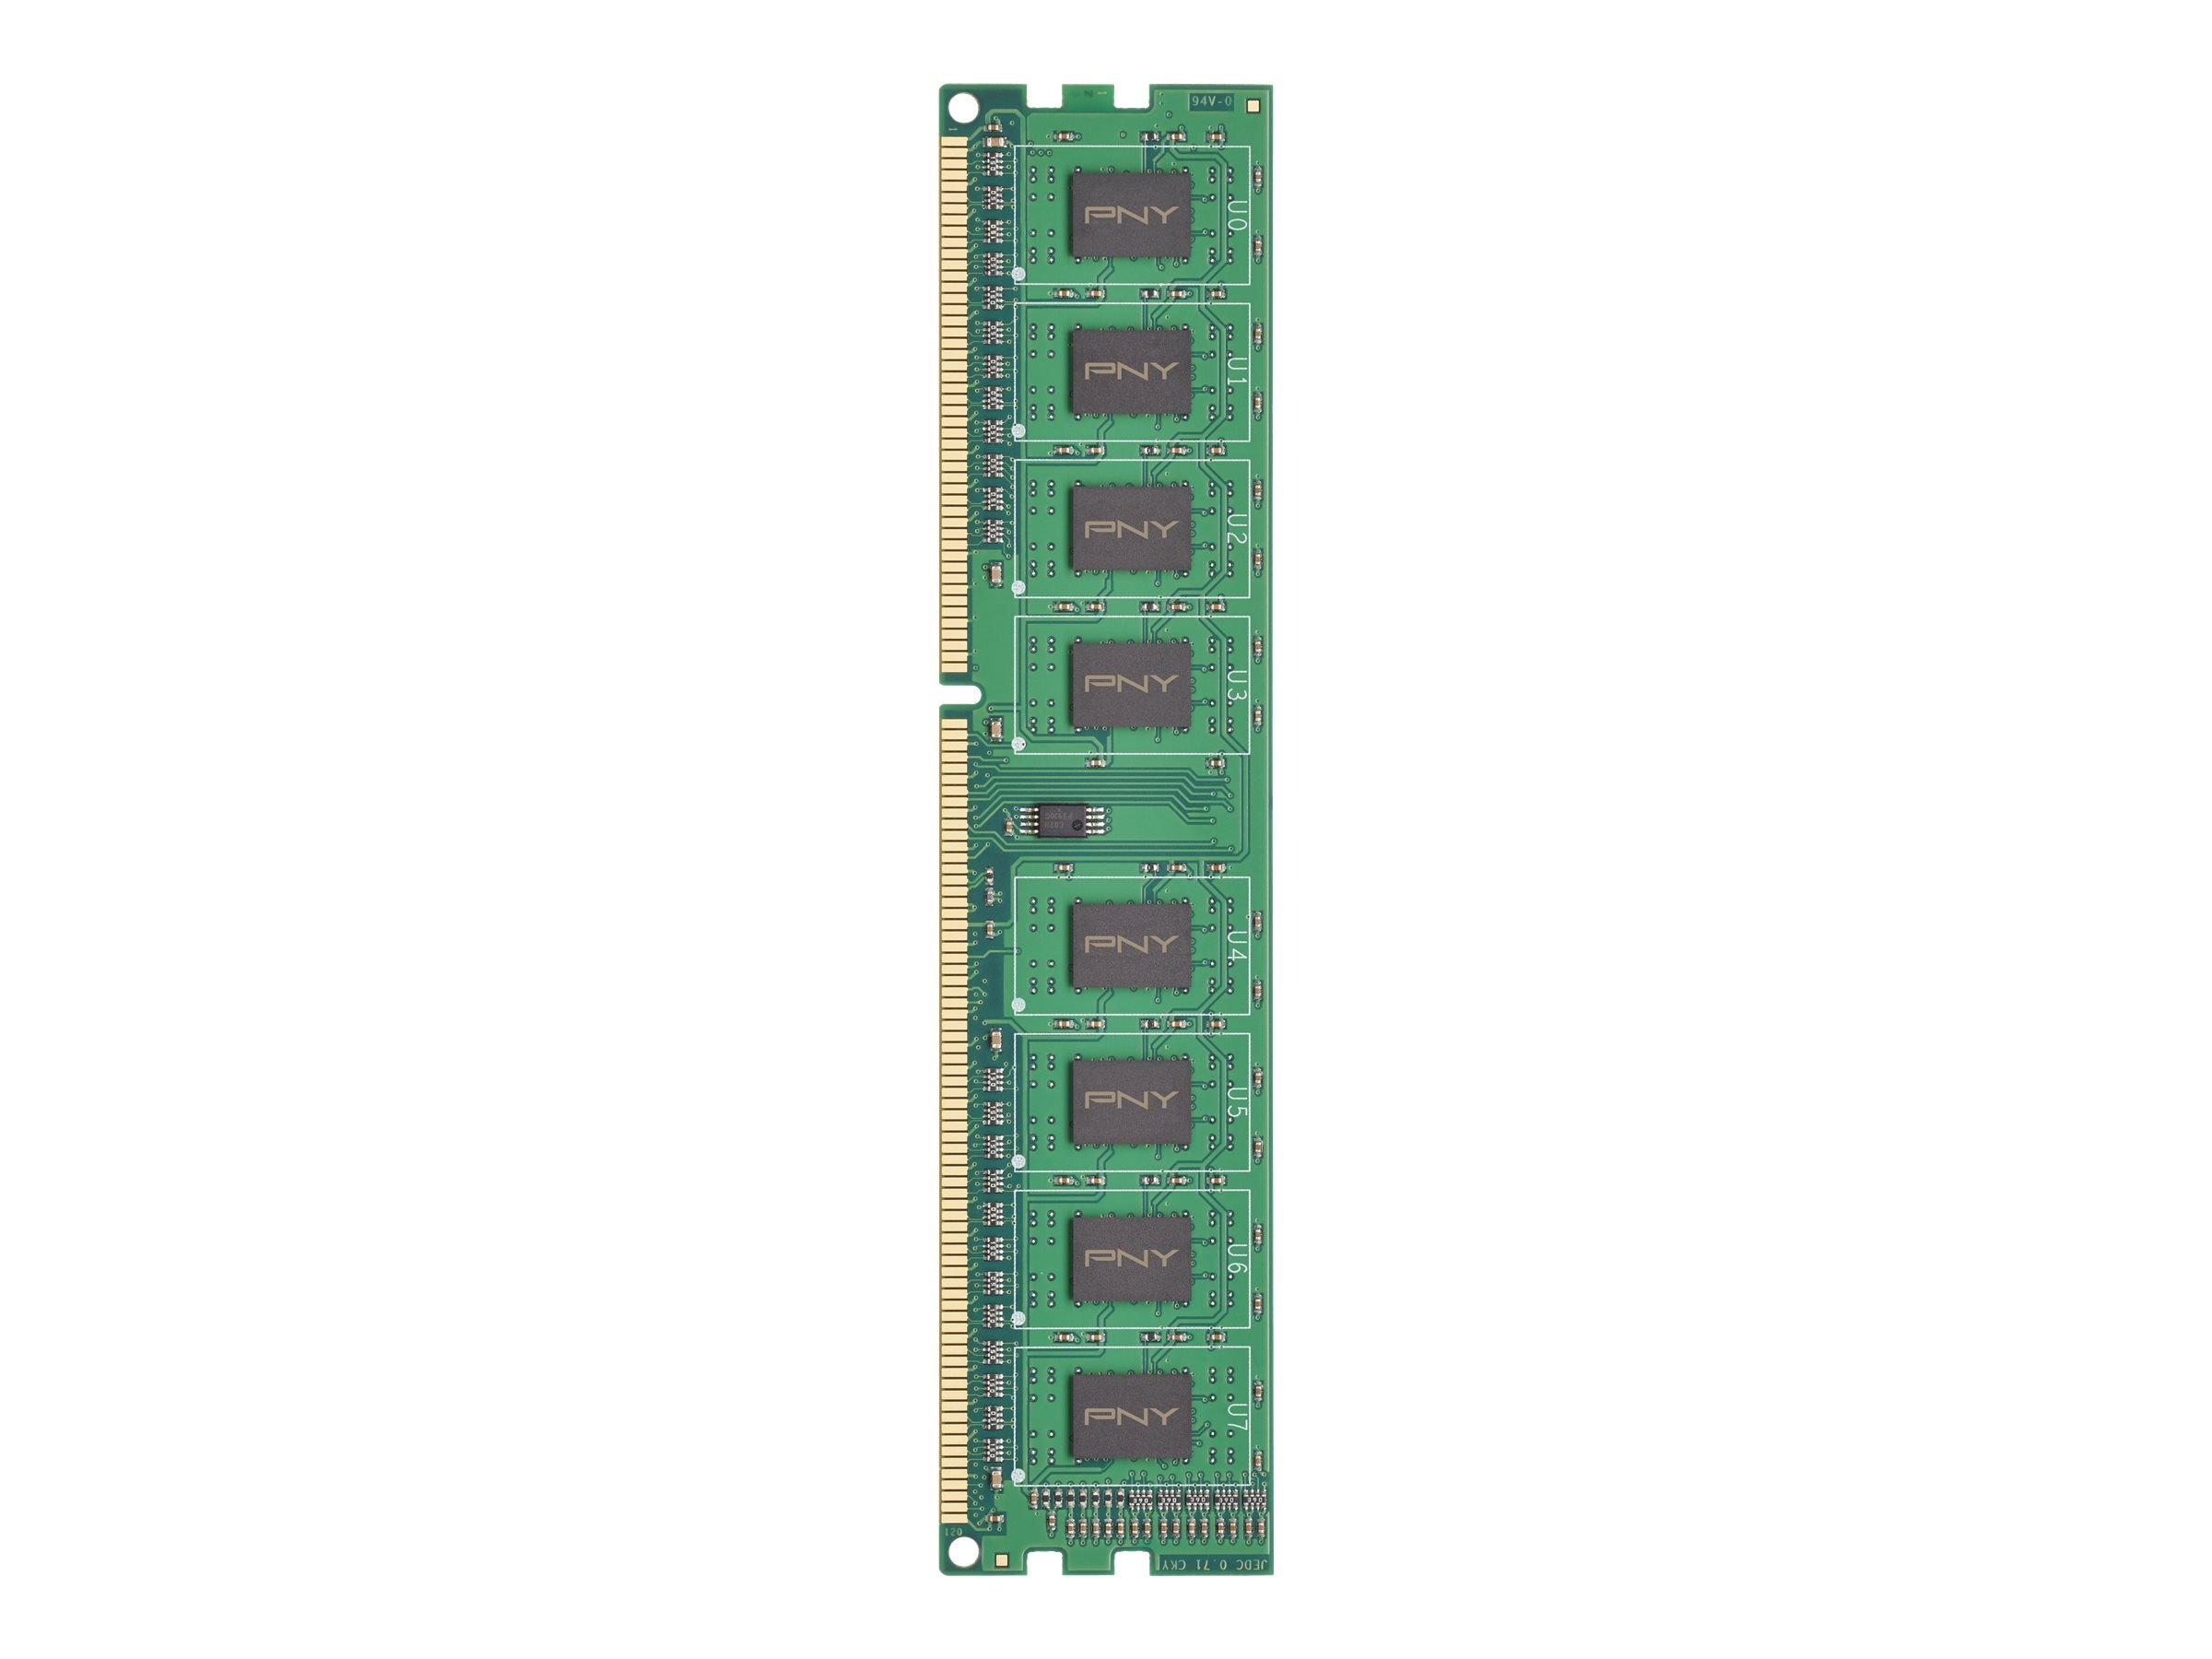 PNY 4GB PC3-10666 240-pin DDR3 SDRAM DIMM